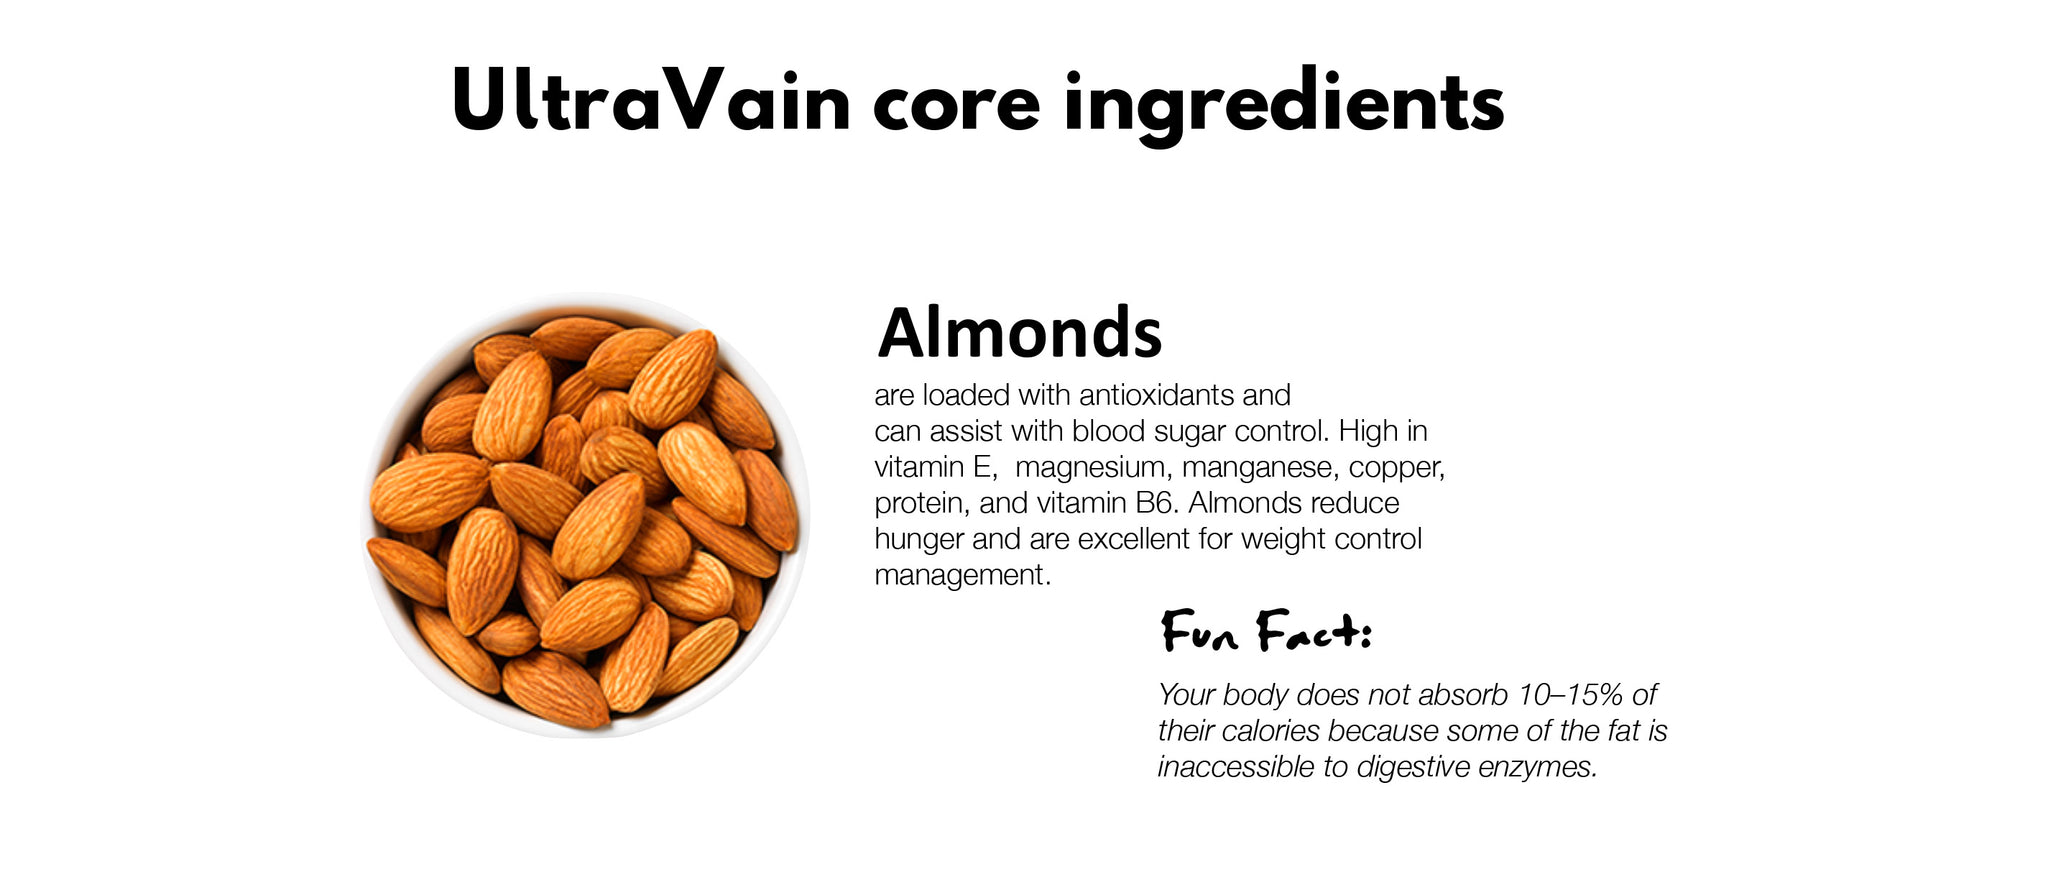 Almonds are loaded with antioxidants and 